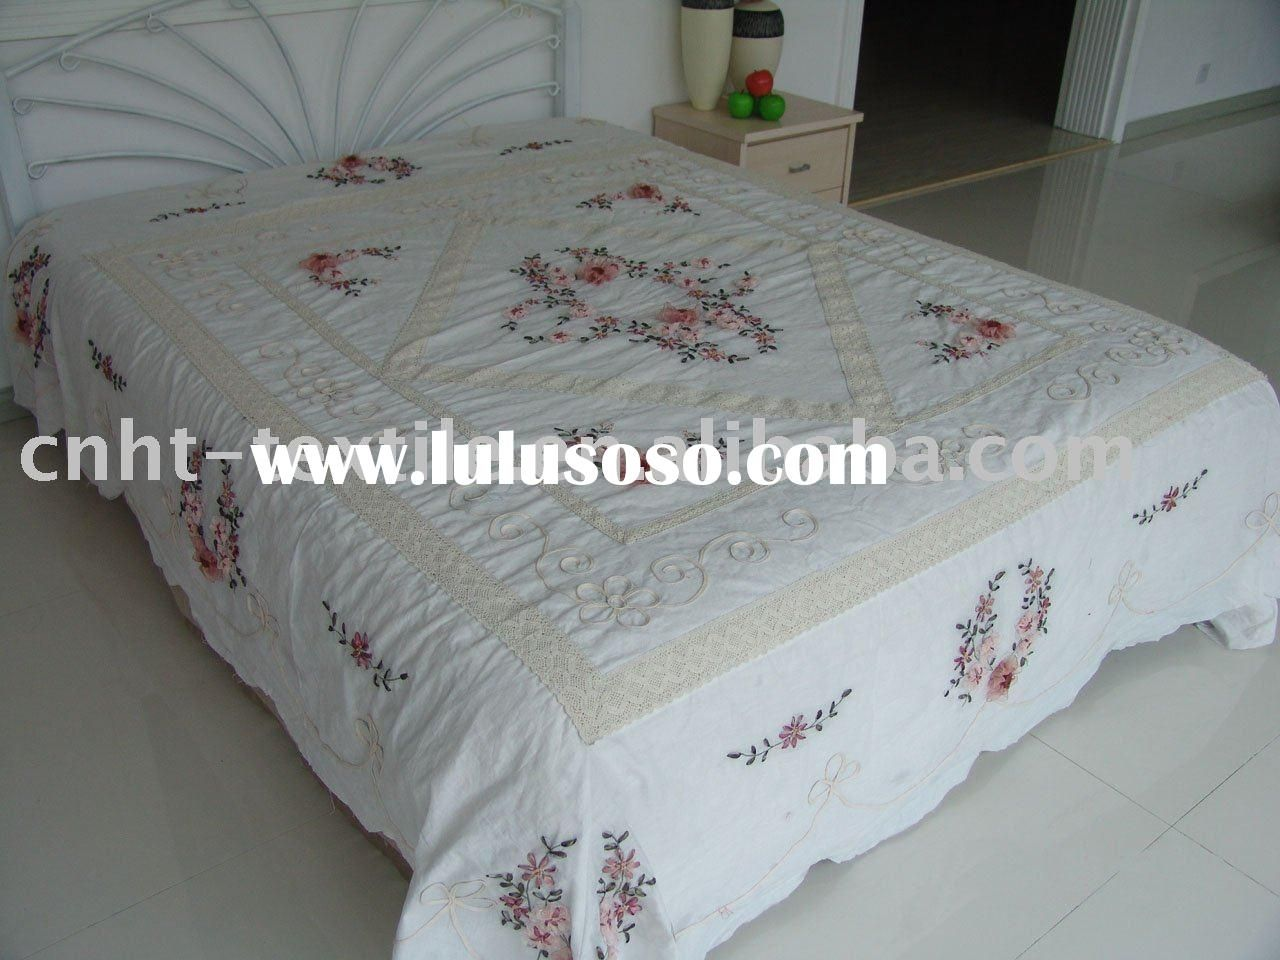 Ribbon work bed sheets designs - Ribbon Embroidery Designs 2011 New Design Ribbon Embroidery Bedspread Embroidery Flower Design